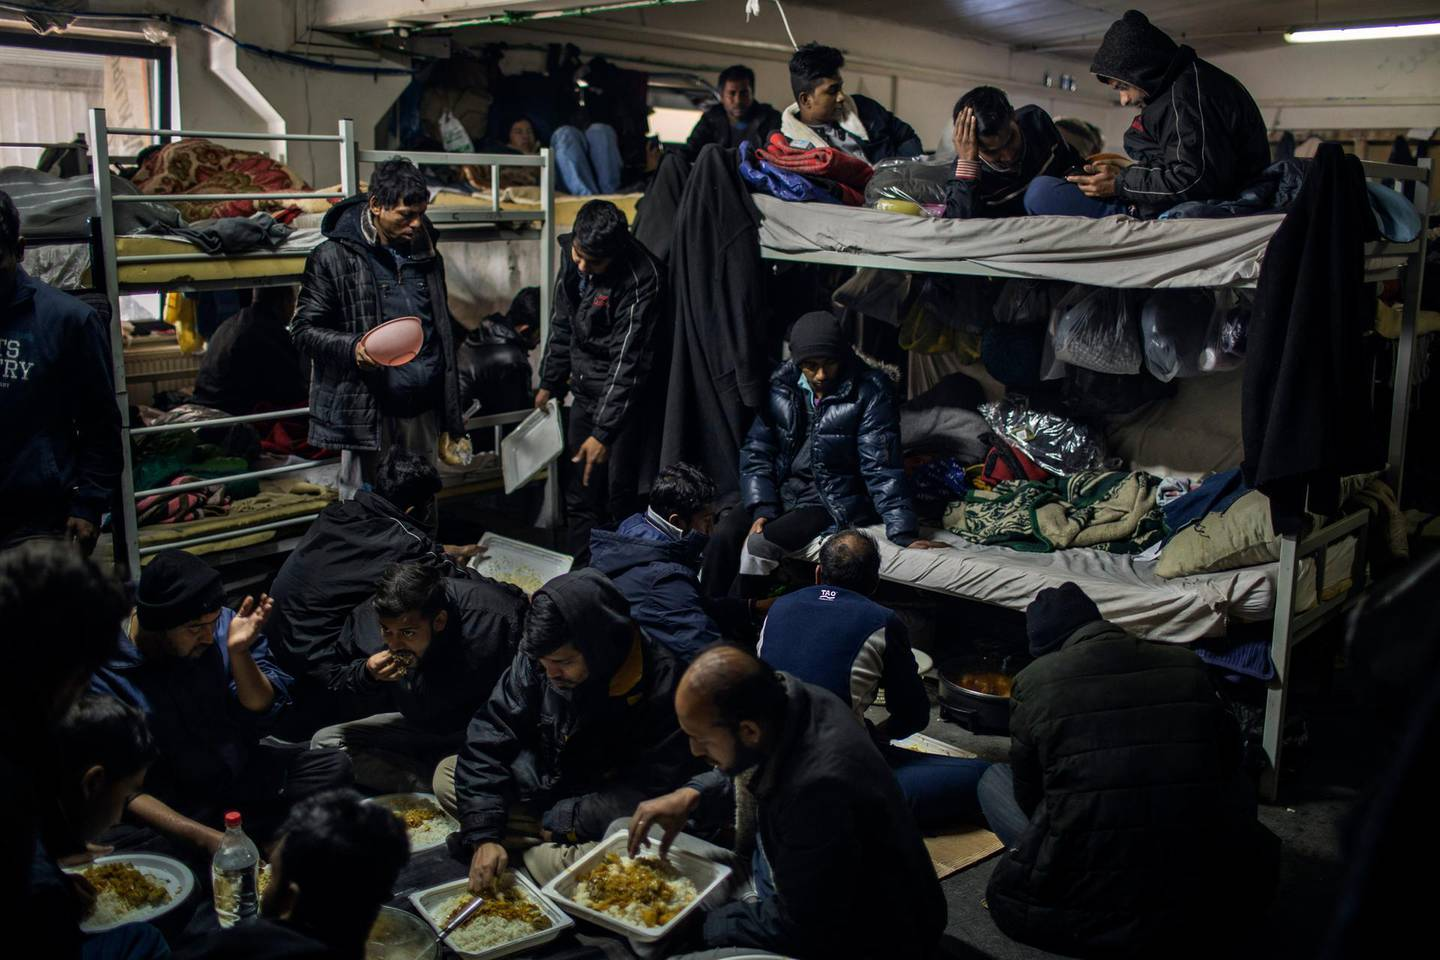 Migrants mostly from Bangladesh are living in an overcrowded room in the Miral camp in Velika Kladusa.